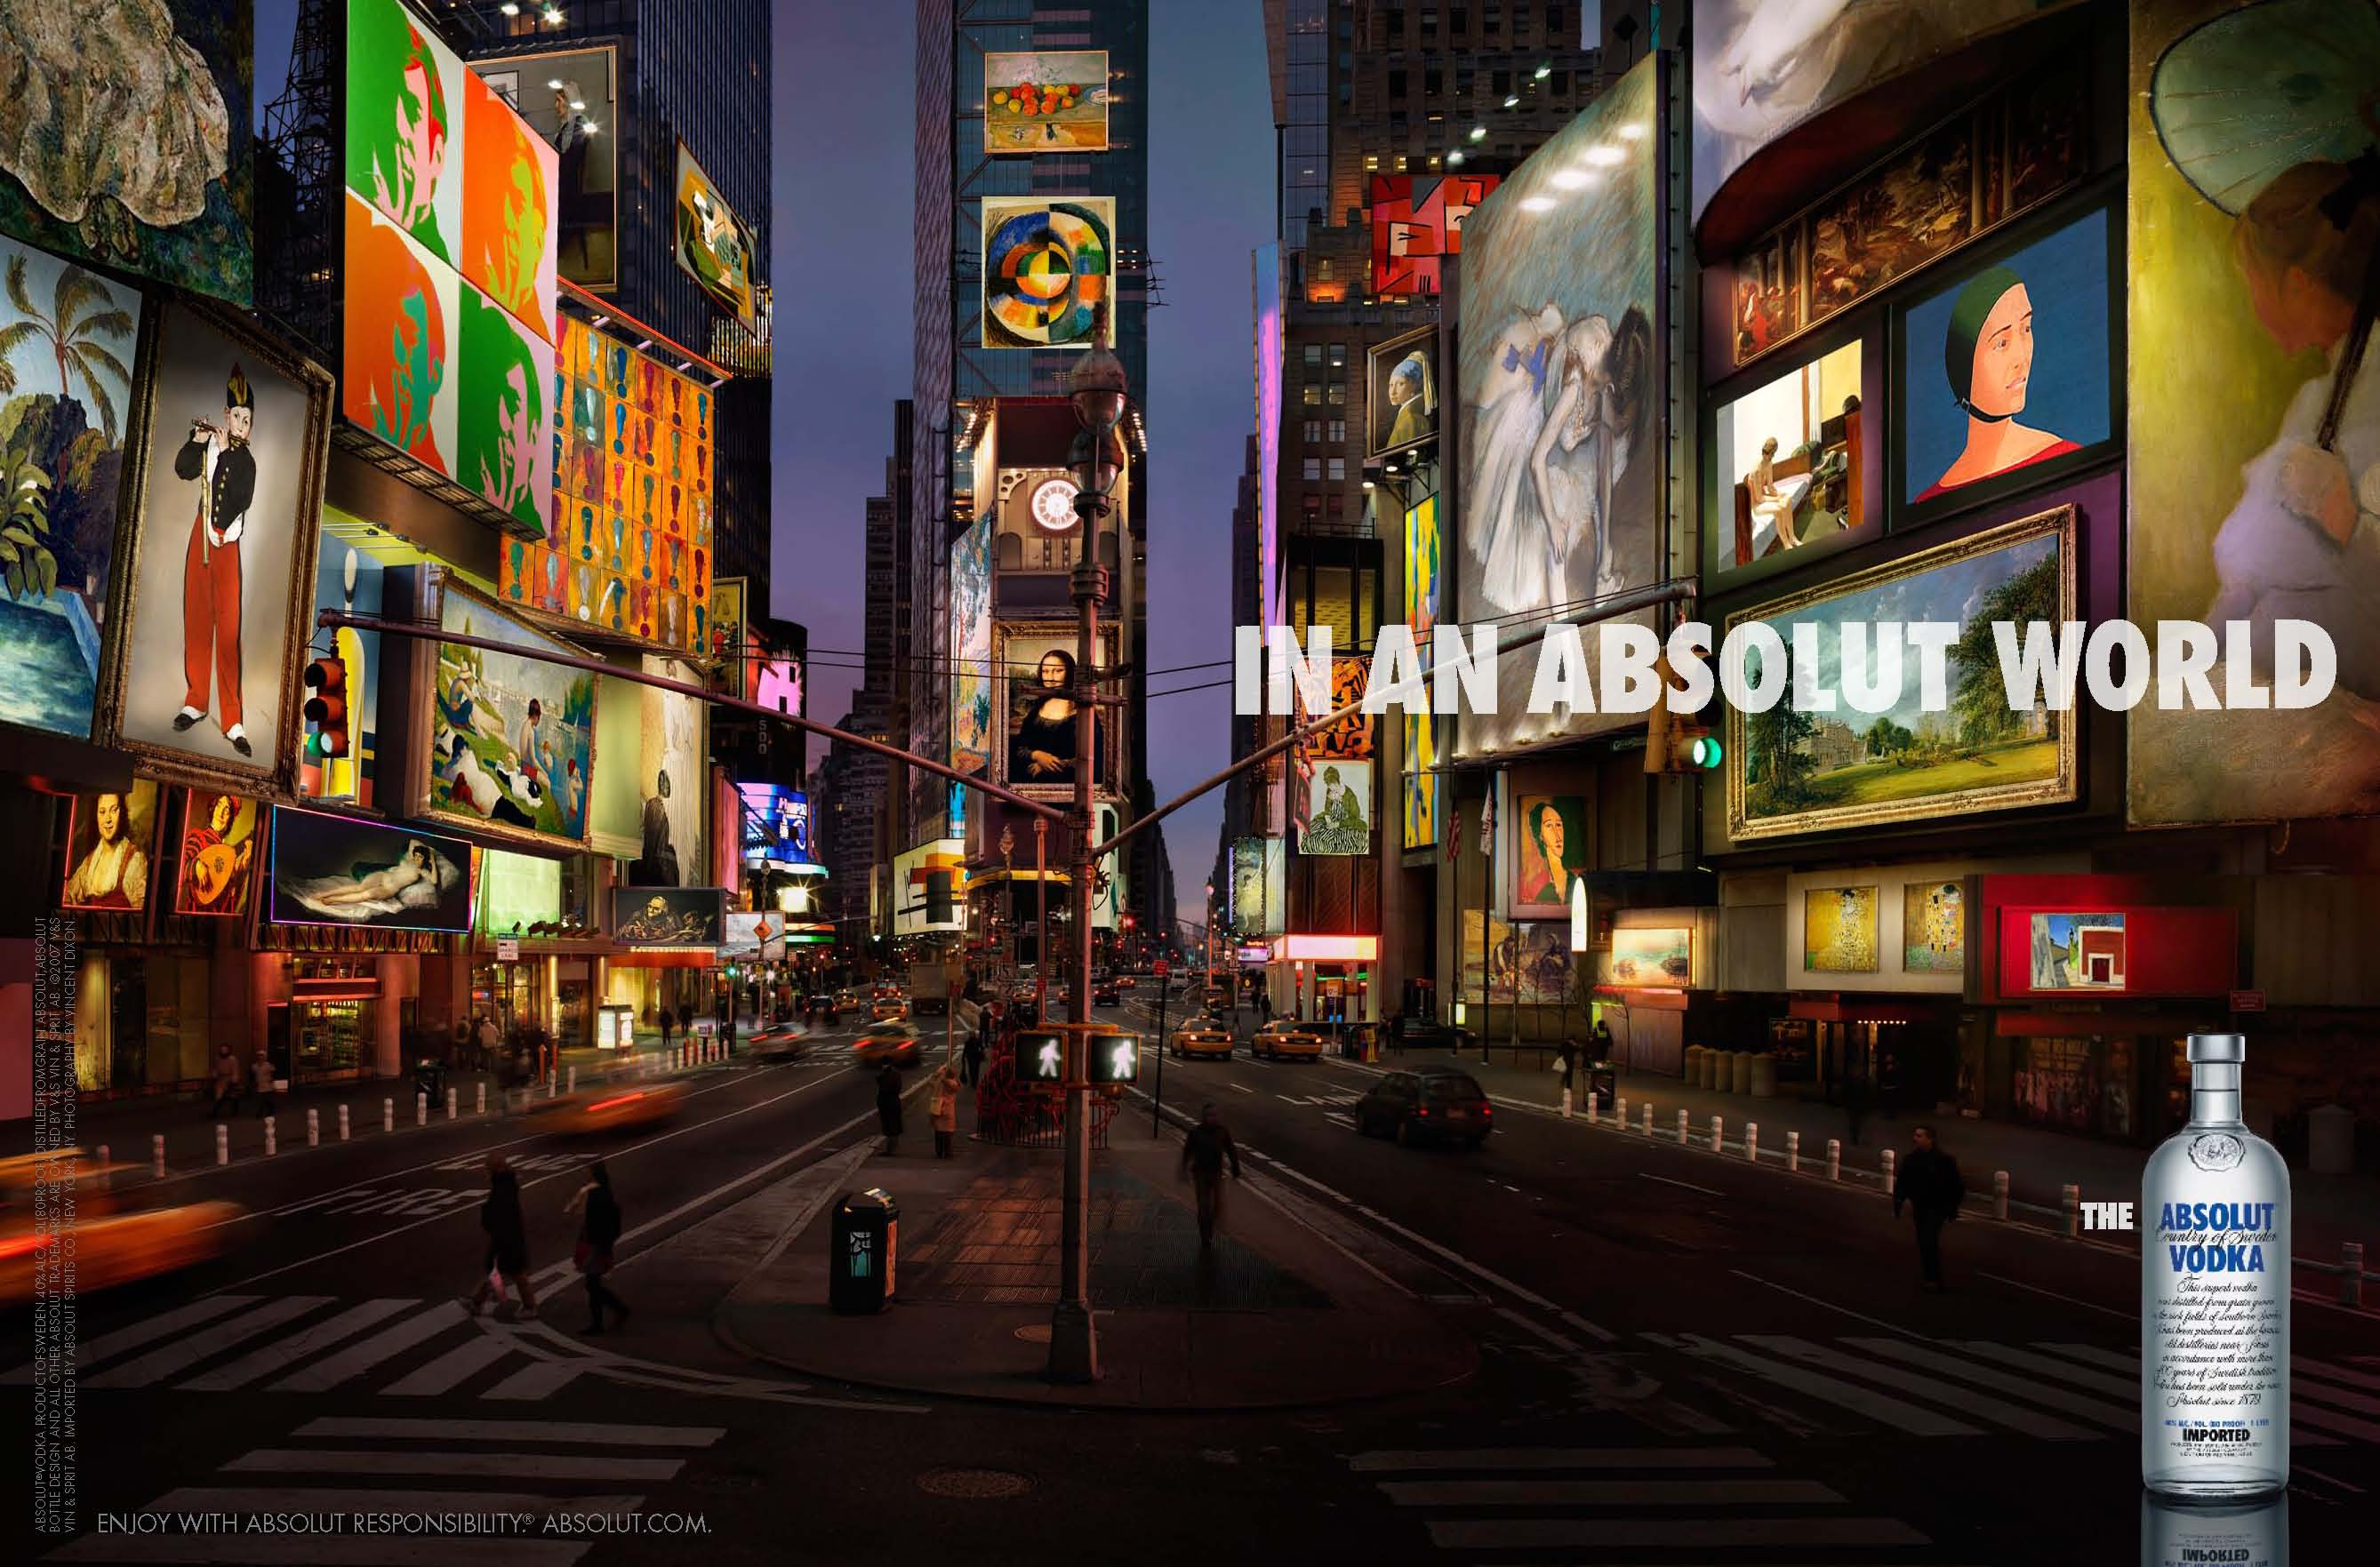 In an absolut world : Times Square